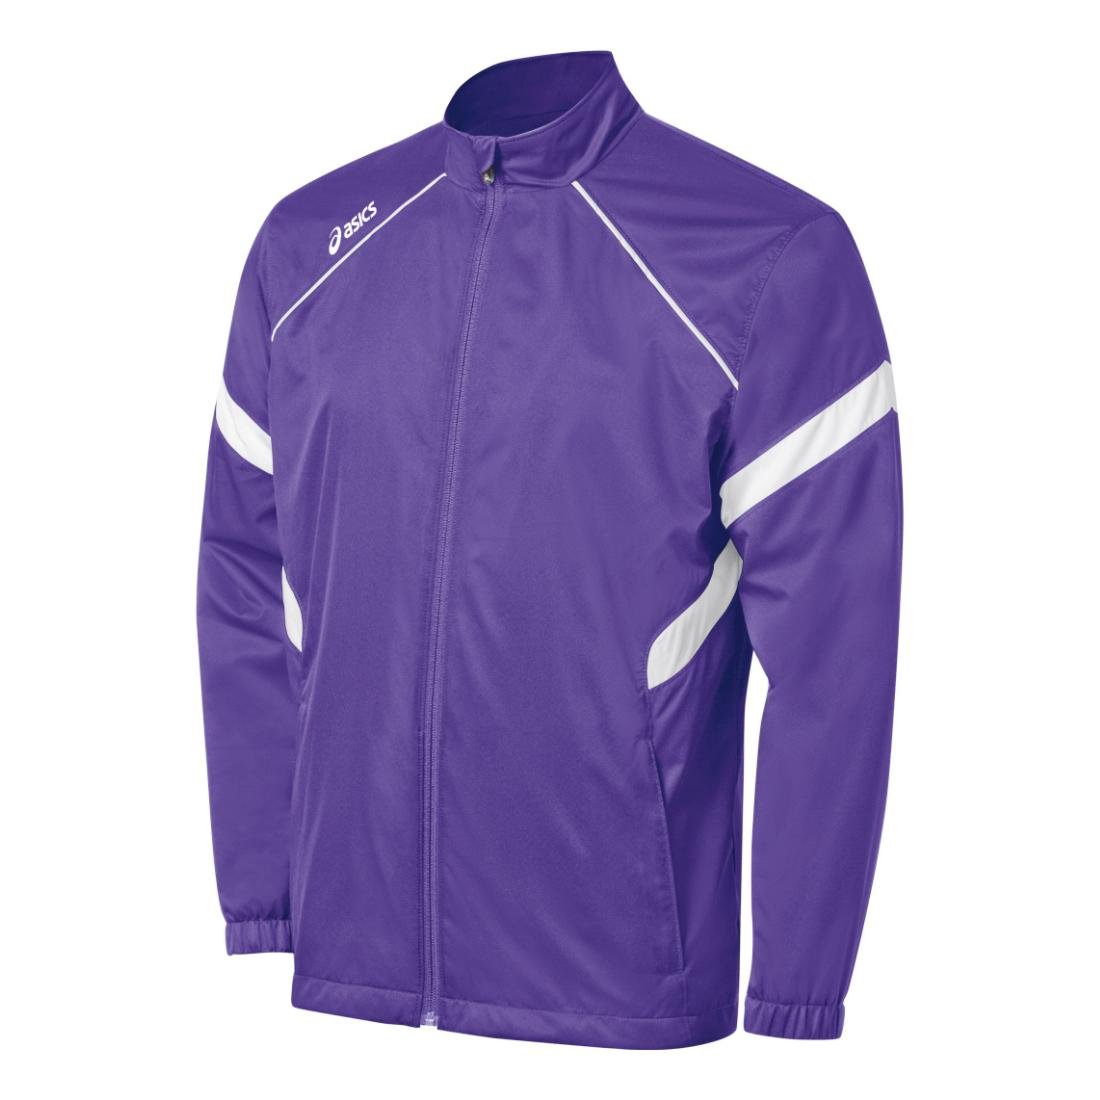 ASICS Junior Surge Warm-Up Jacket (Purple/White) asics waterproof jacket